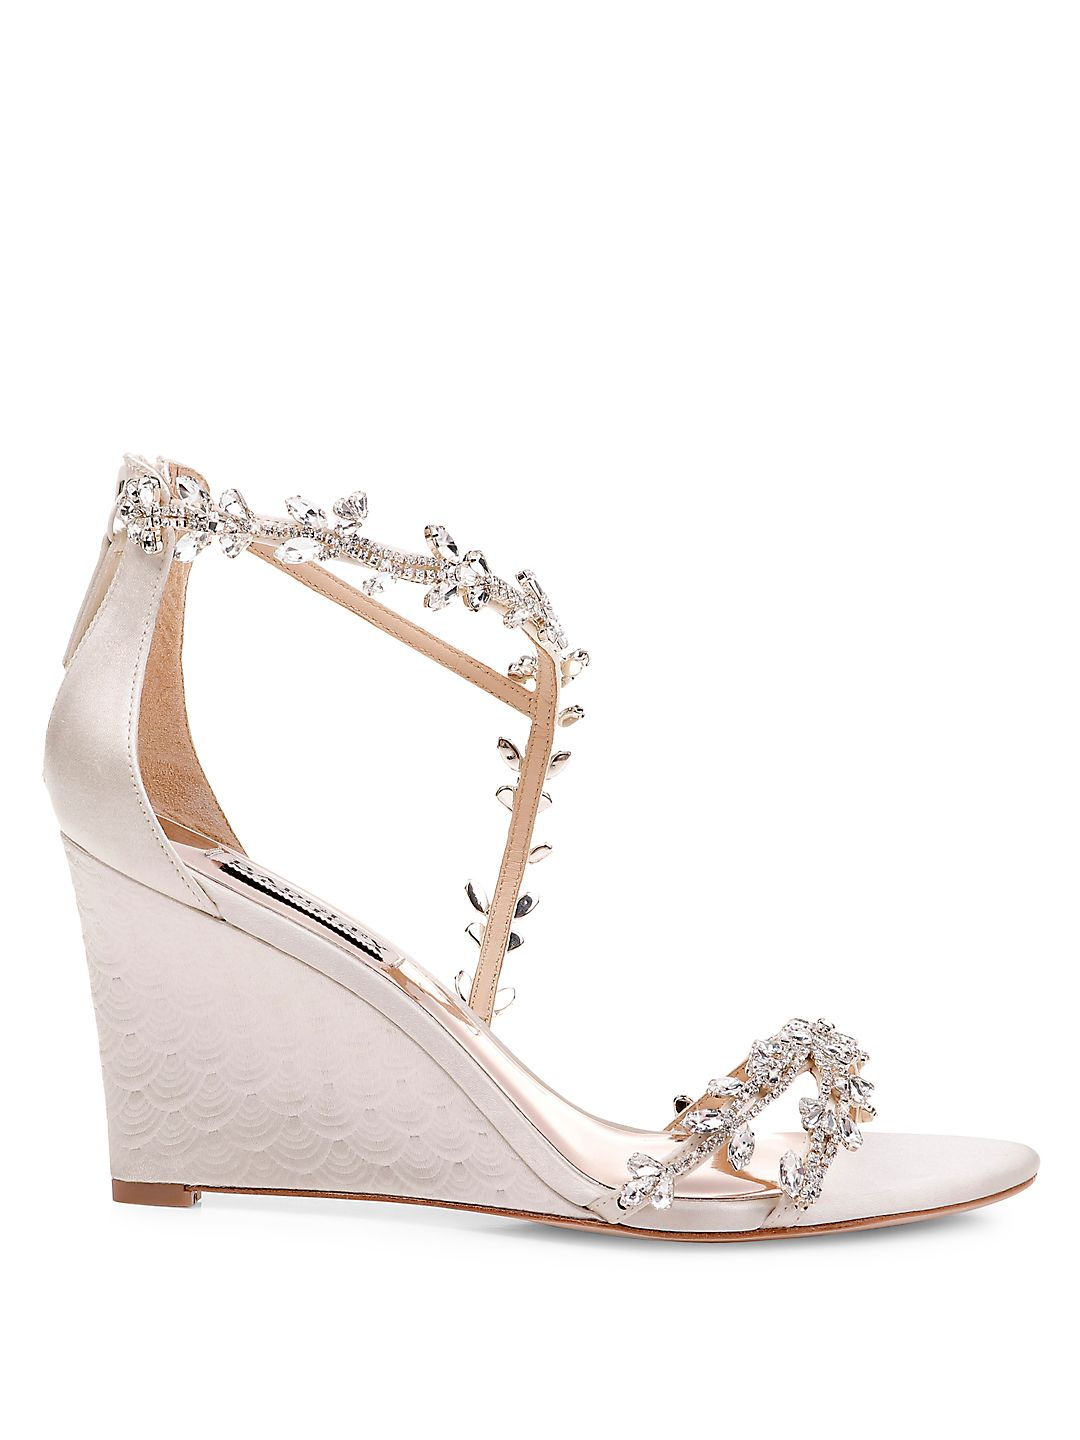 Feather Embellished Satin Wedge Sandals